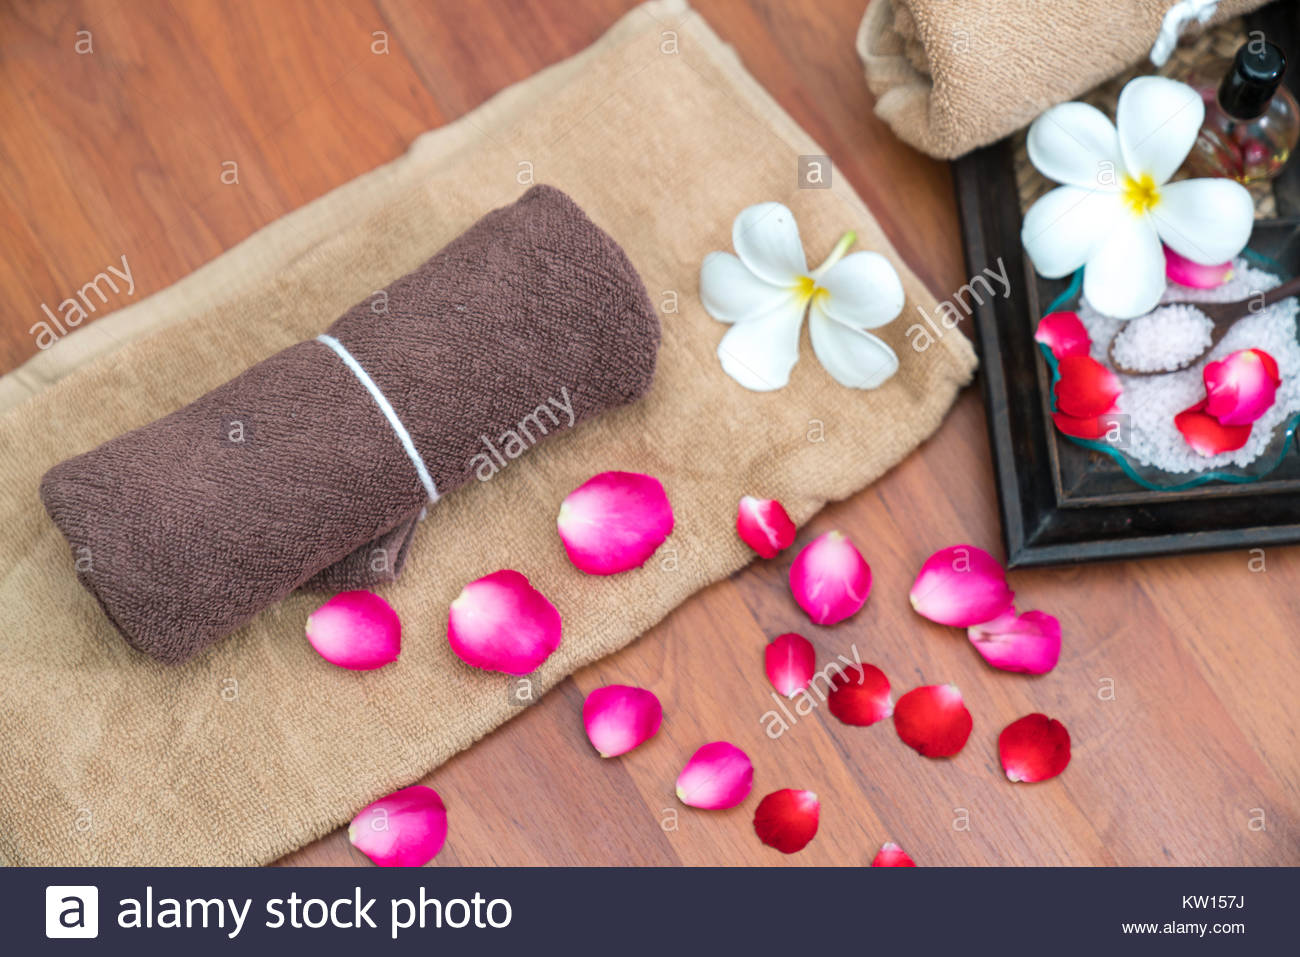 Spa Massage Compress Stock Photos  Spa Massage Compress Stock Images - Alamy-3111